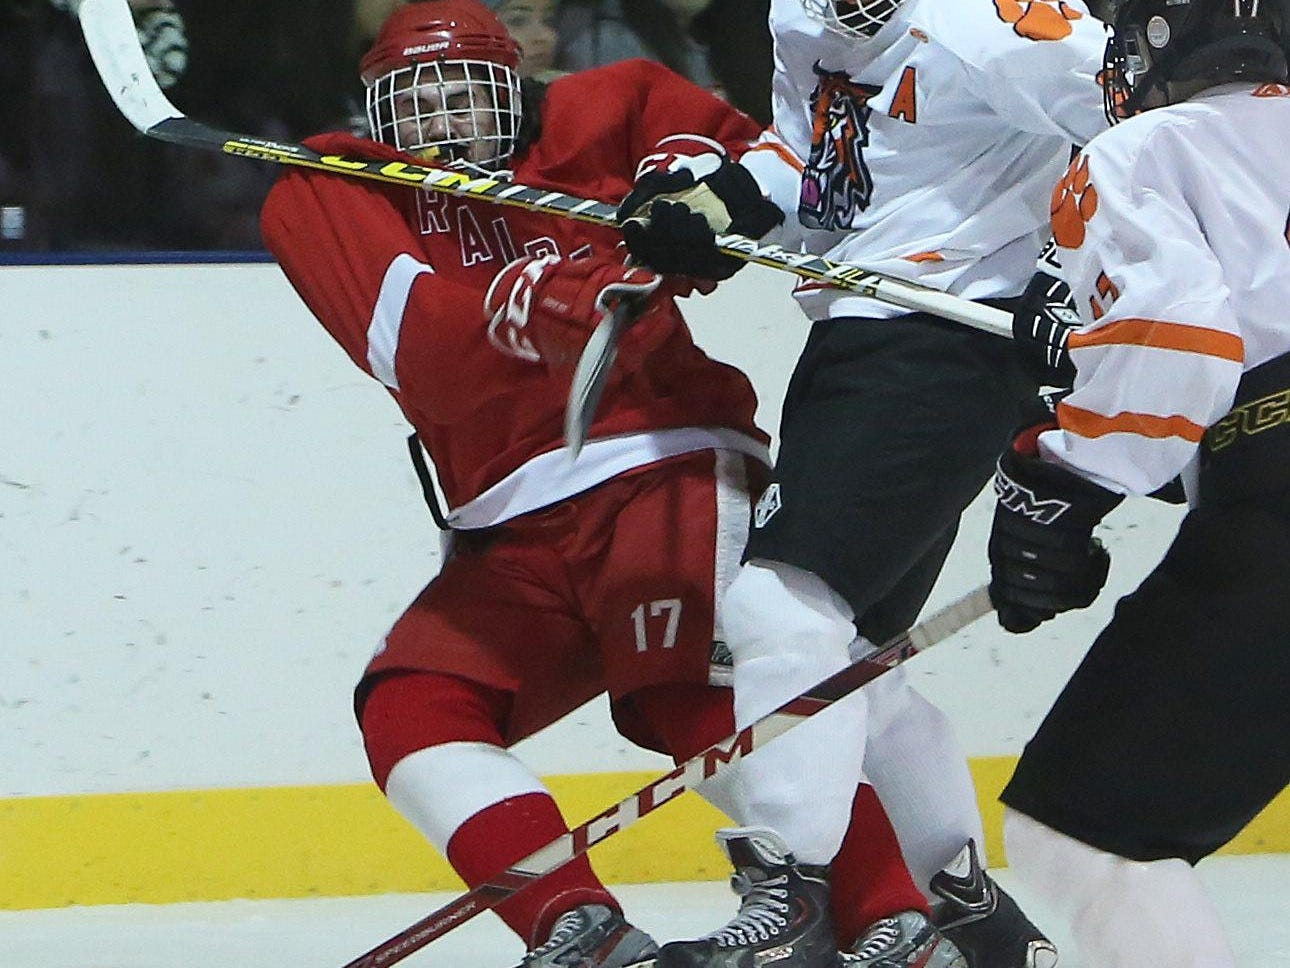 From left, North Rockland's Charles Lowther (17) and White Plains' James Carrier (8) battle for puck control during hockey action at Ebersole Ice Rink in White Plains Jan. 7, 2016. The game ended in a 4-4 tie.